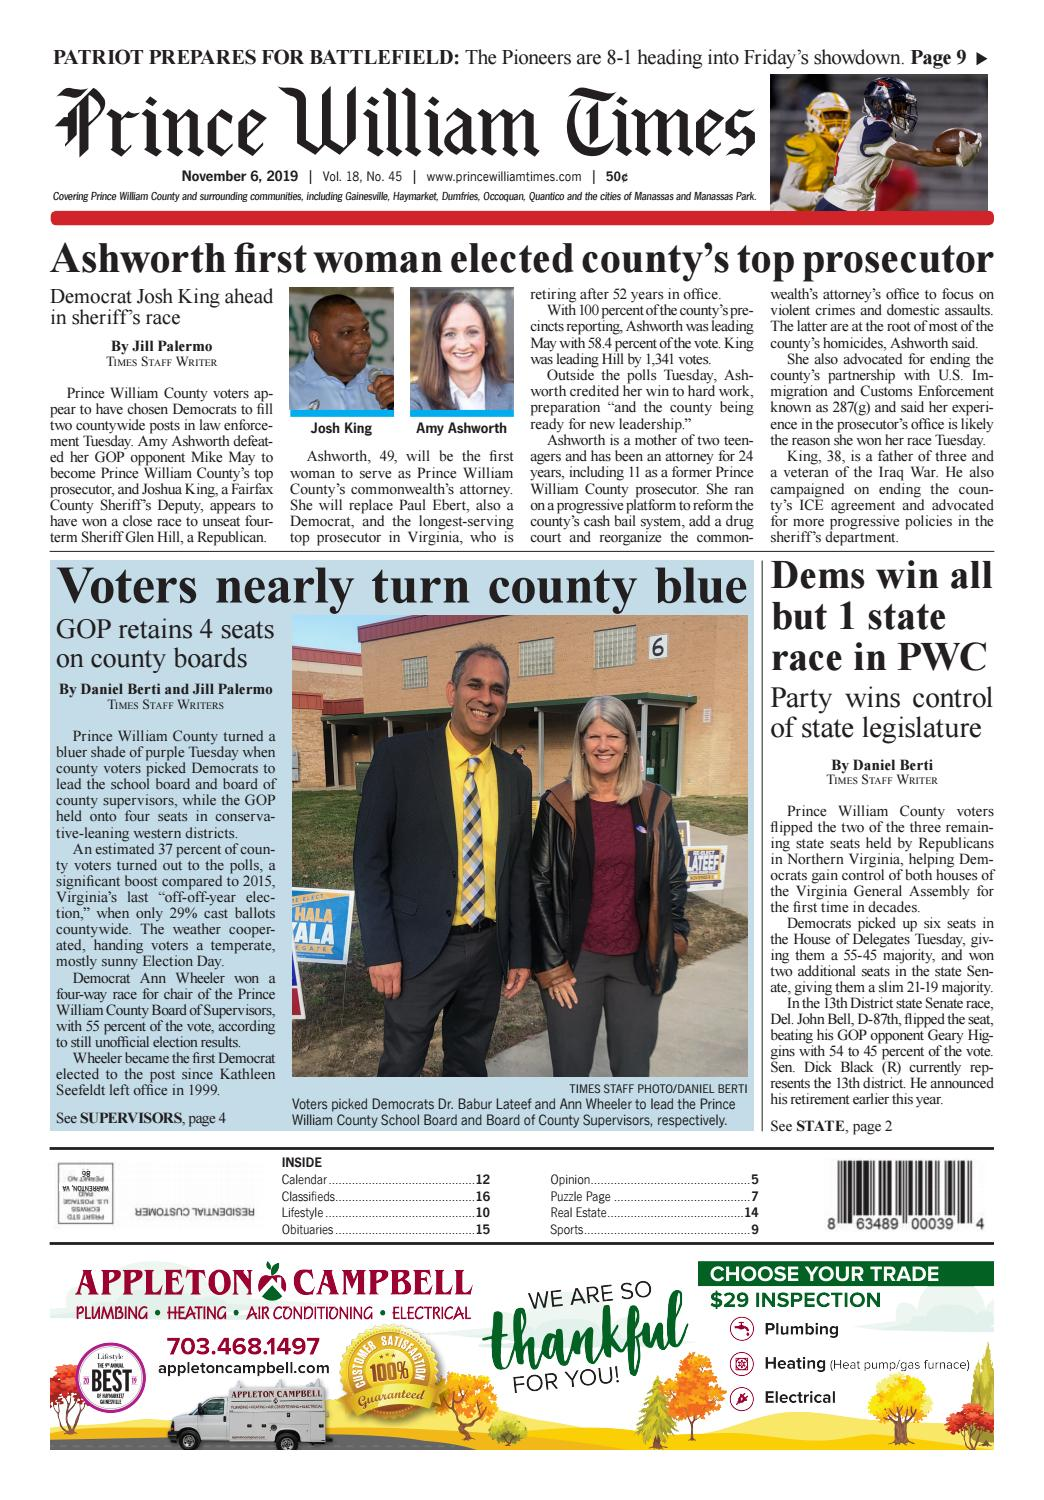 prince william times 11 06 2019 by fauquier times issuu prince william times 11 06 2019 by